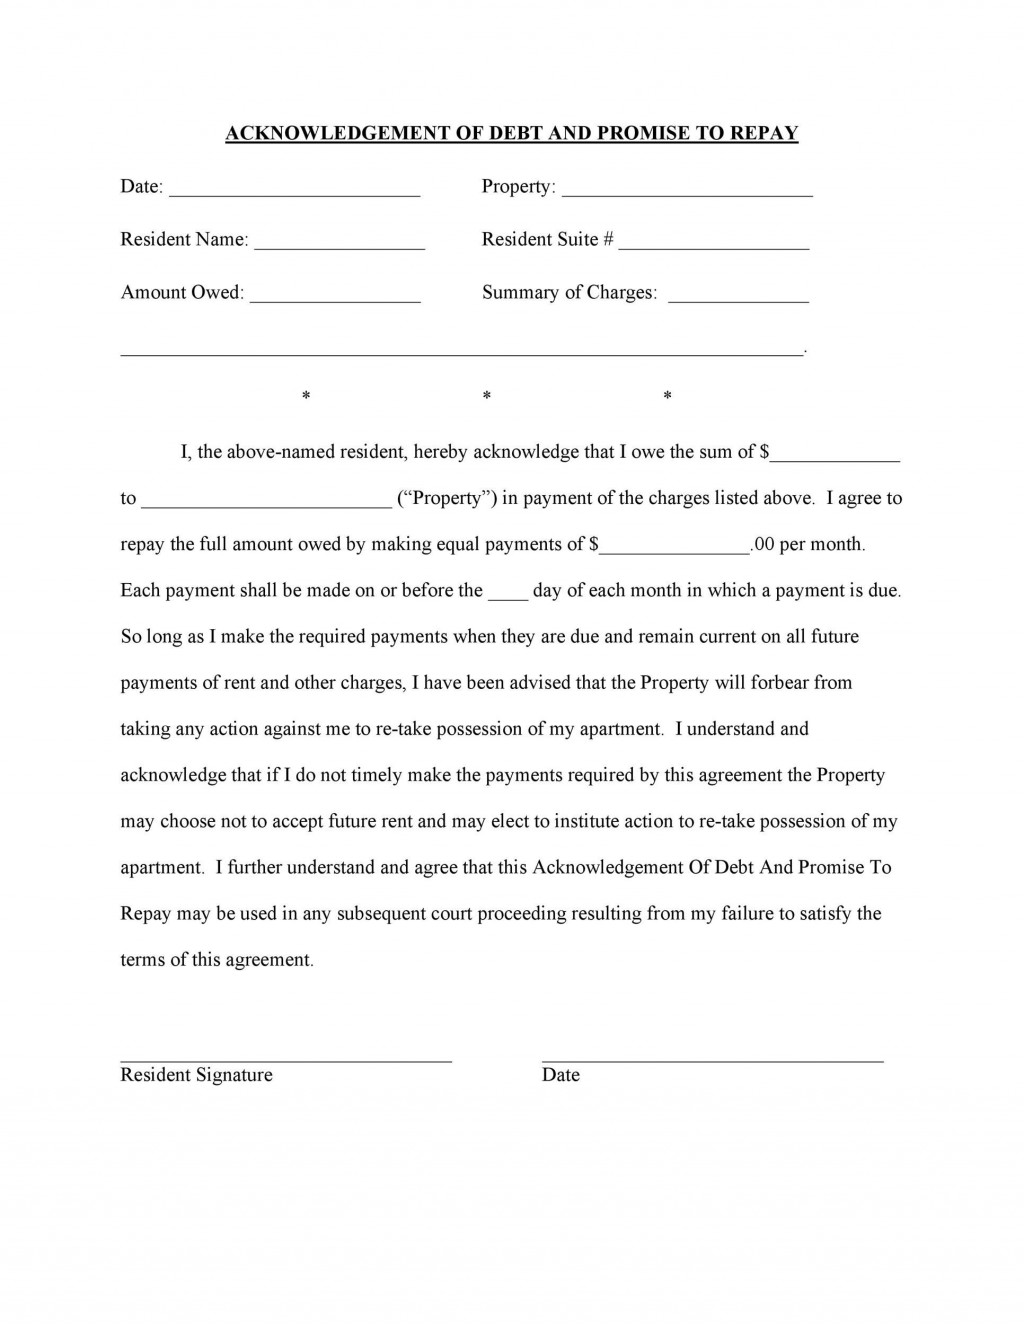 008 Unforgettable Free Family Loan Agreement Template Nz Idea Large